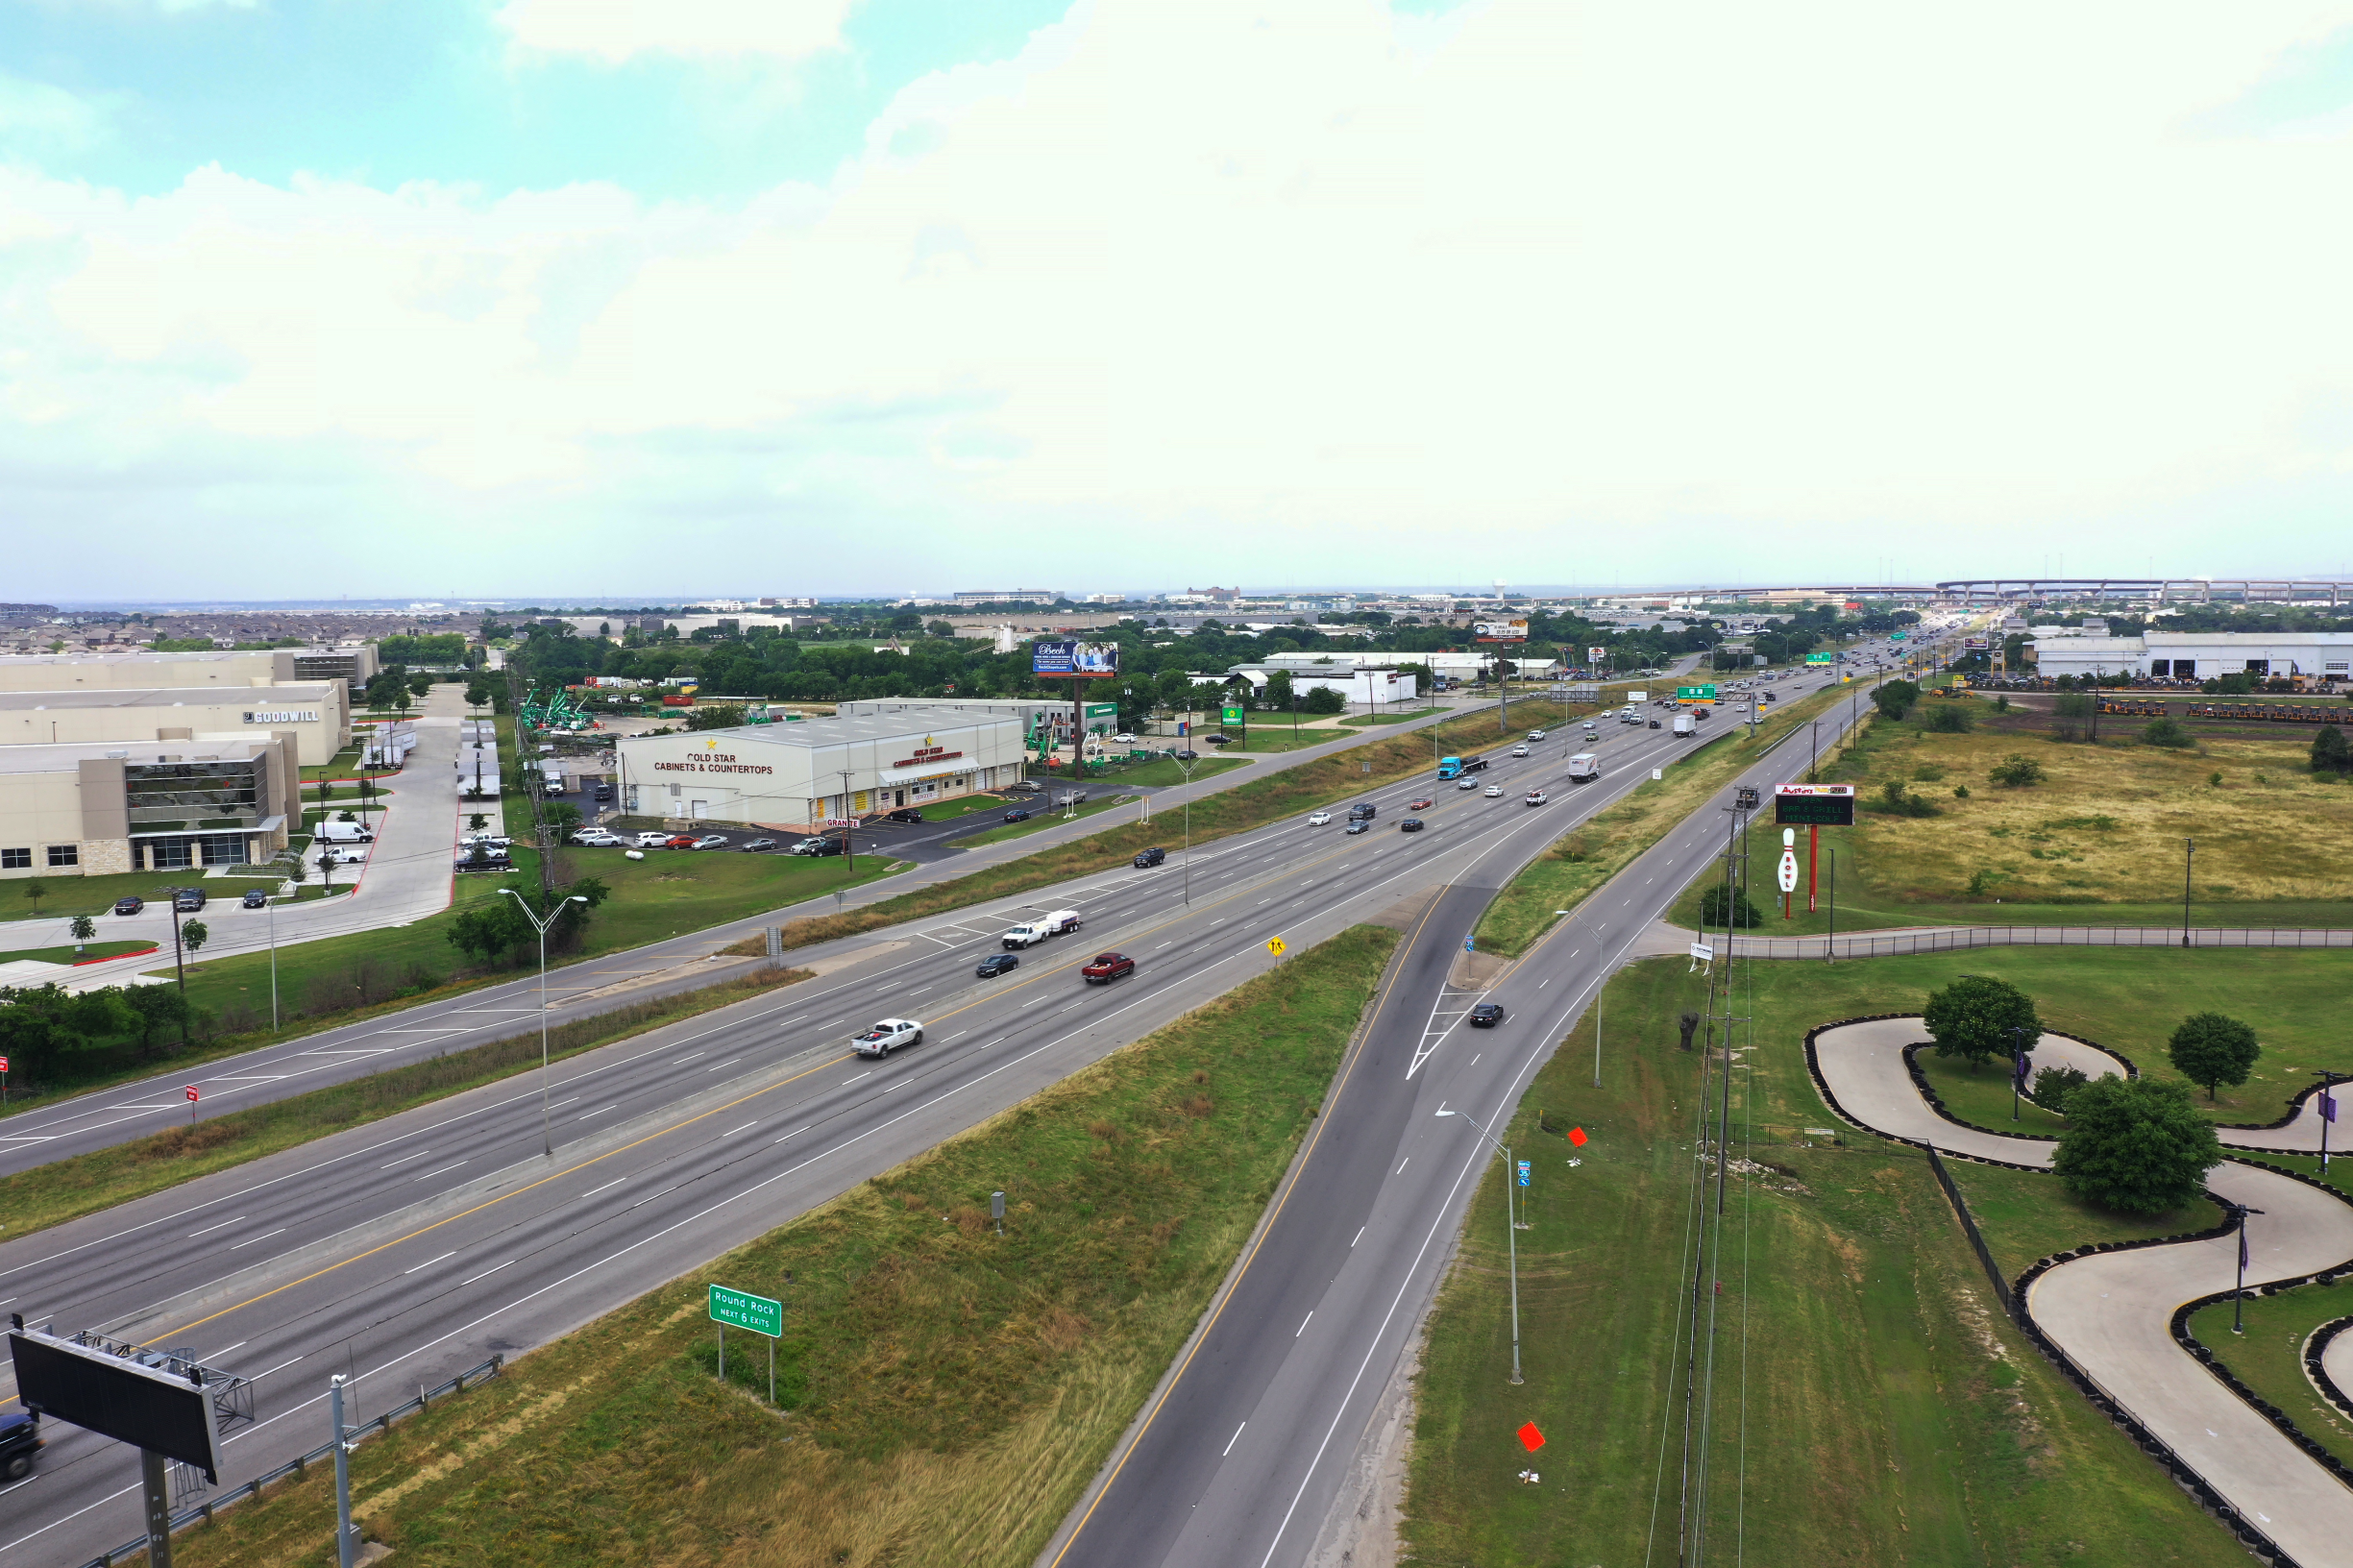 I-35 from Grand Avenue Parkway to SH 45 North ramps before